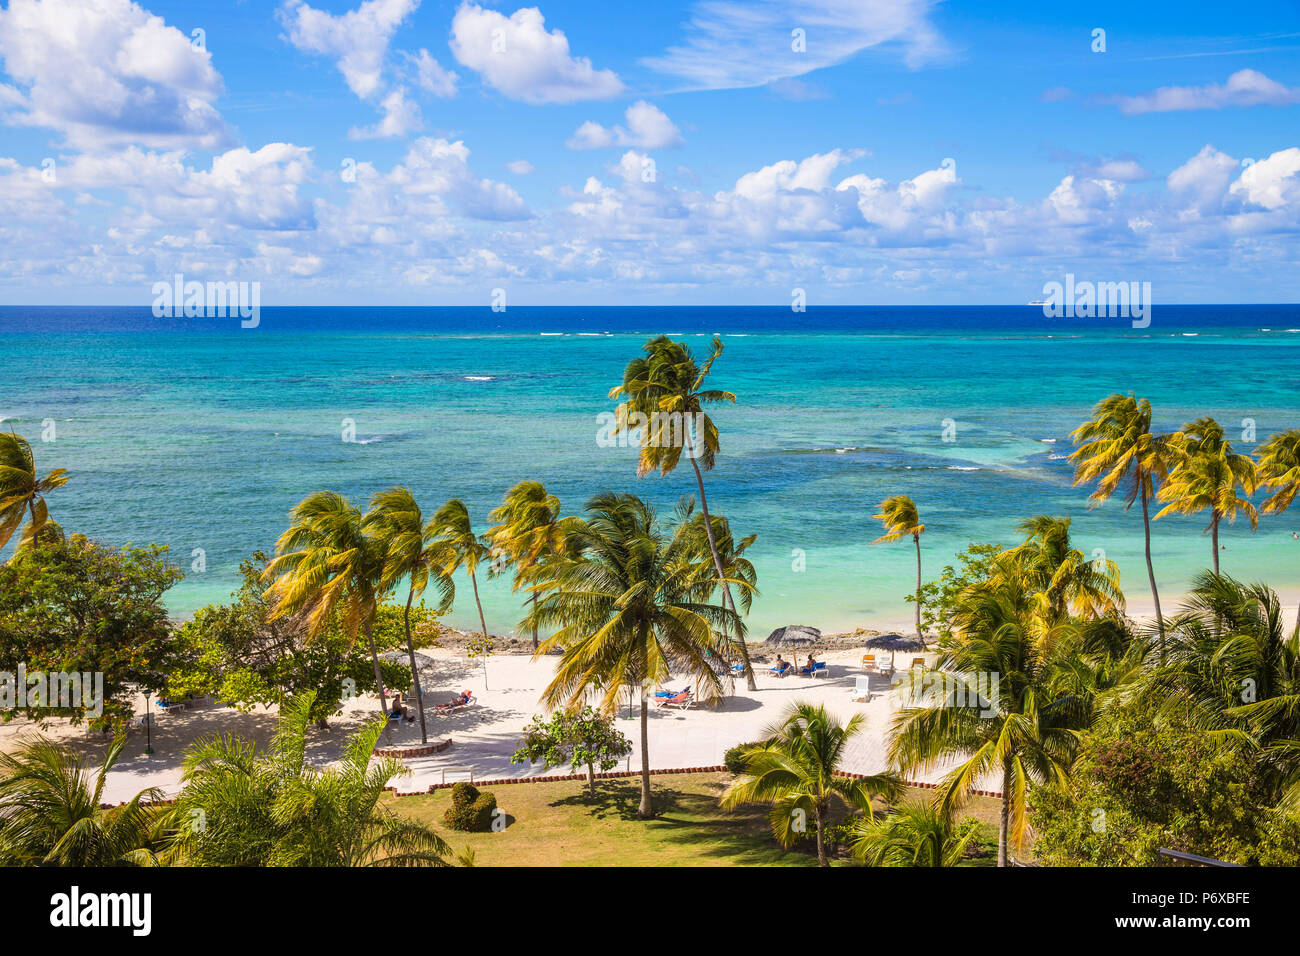 Cuba, Holguin Province, Playa Guardalvaca Stock Photo